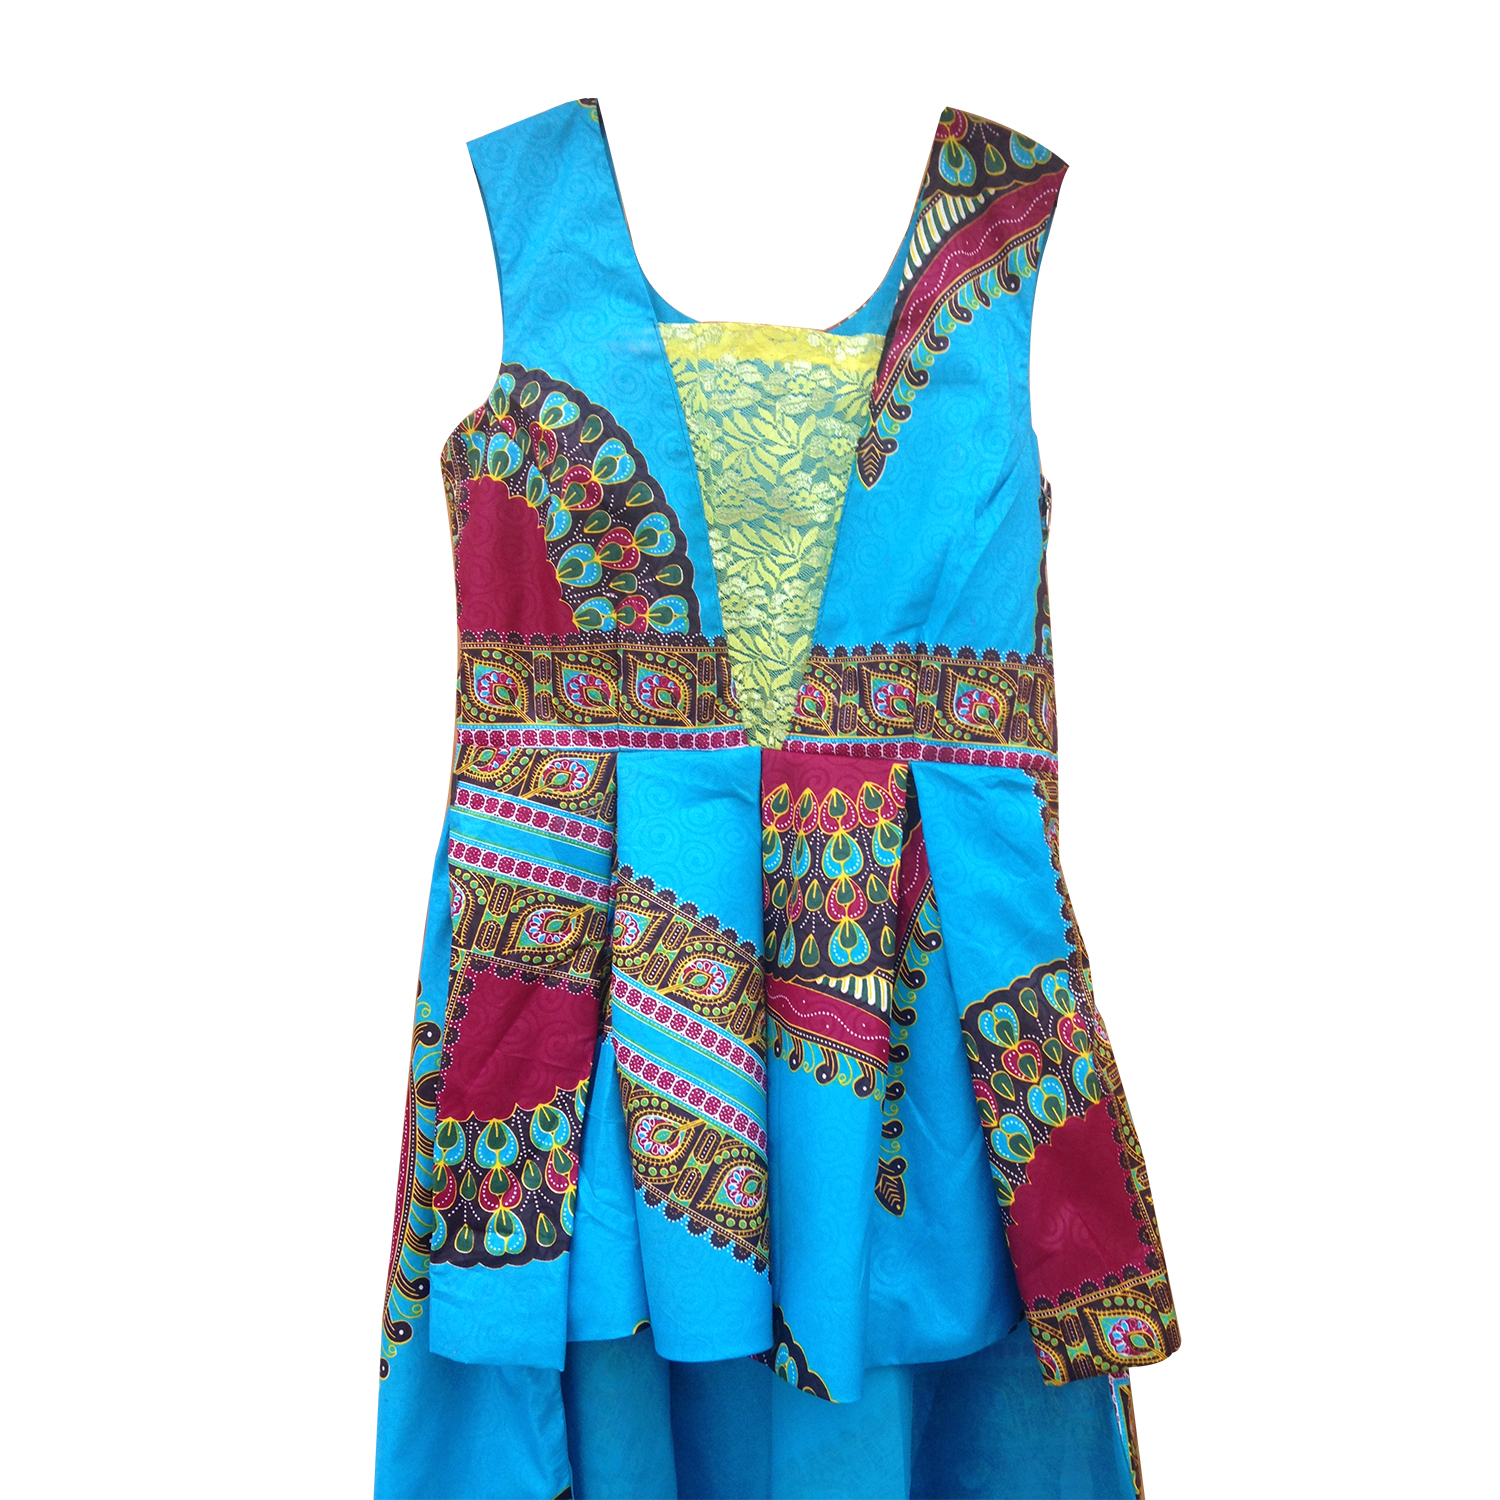 Africa Fashion Picture 1.jpg